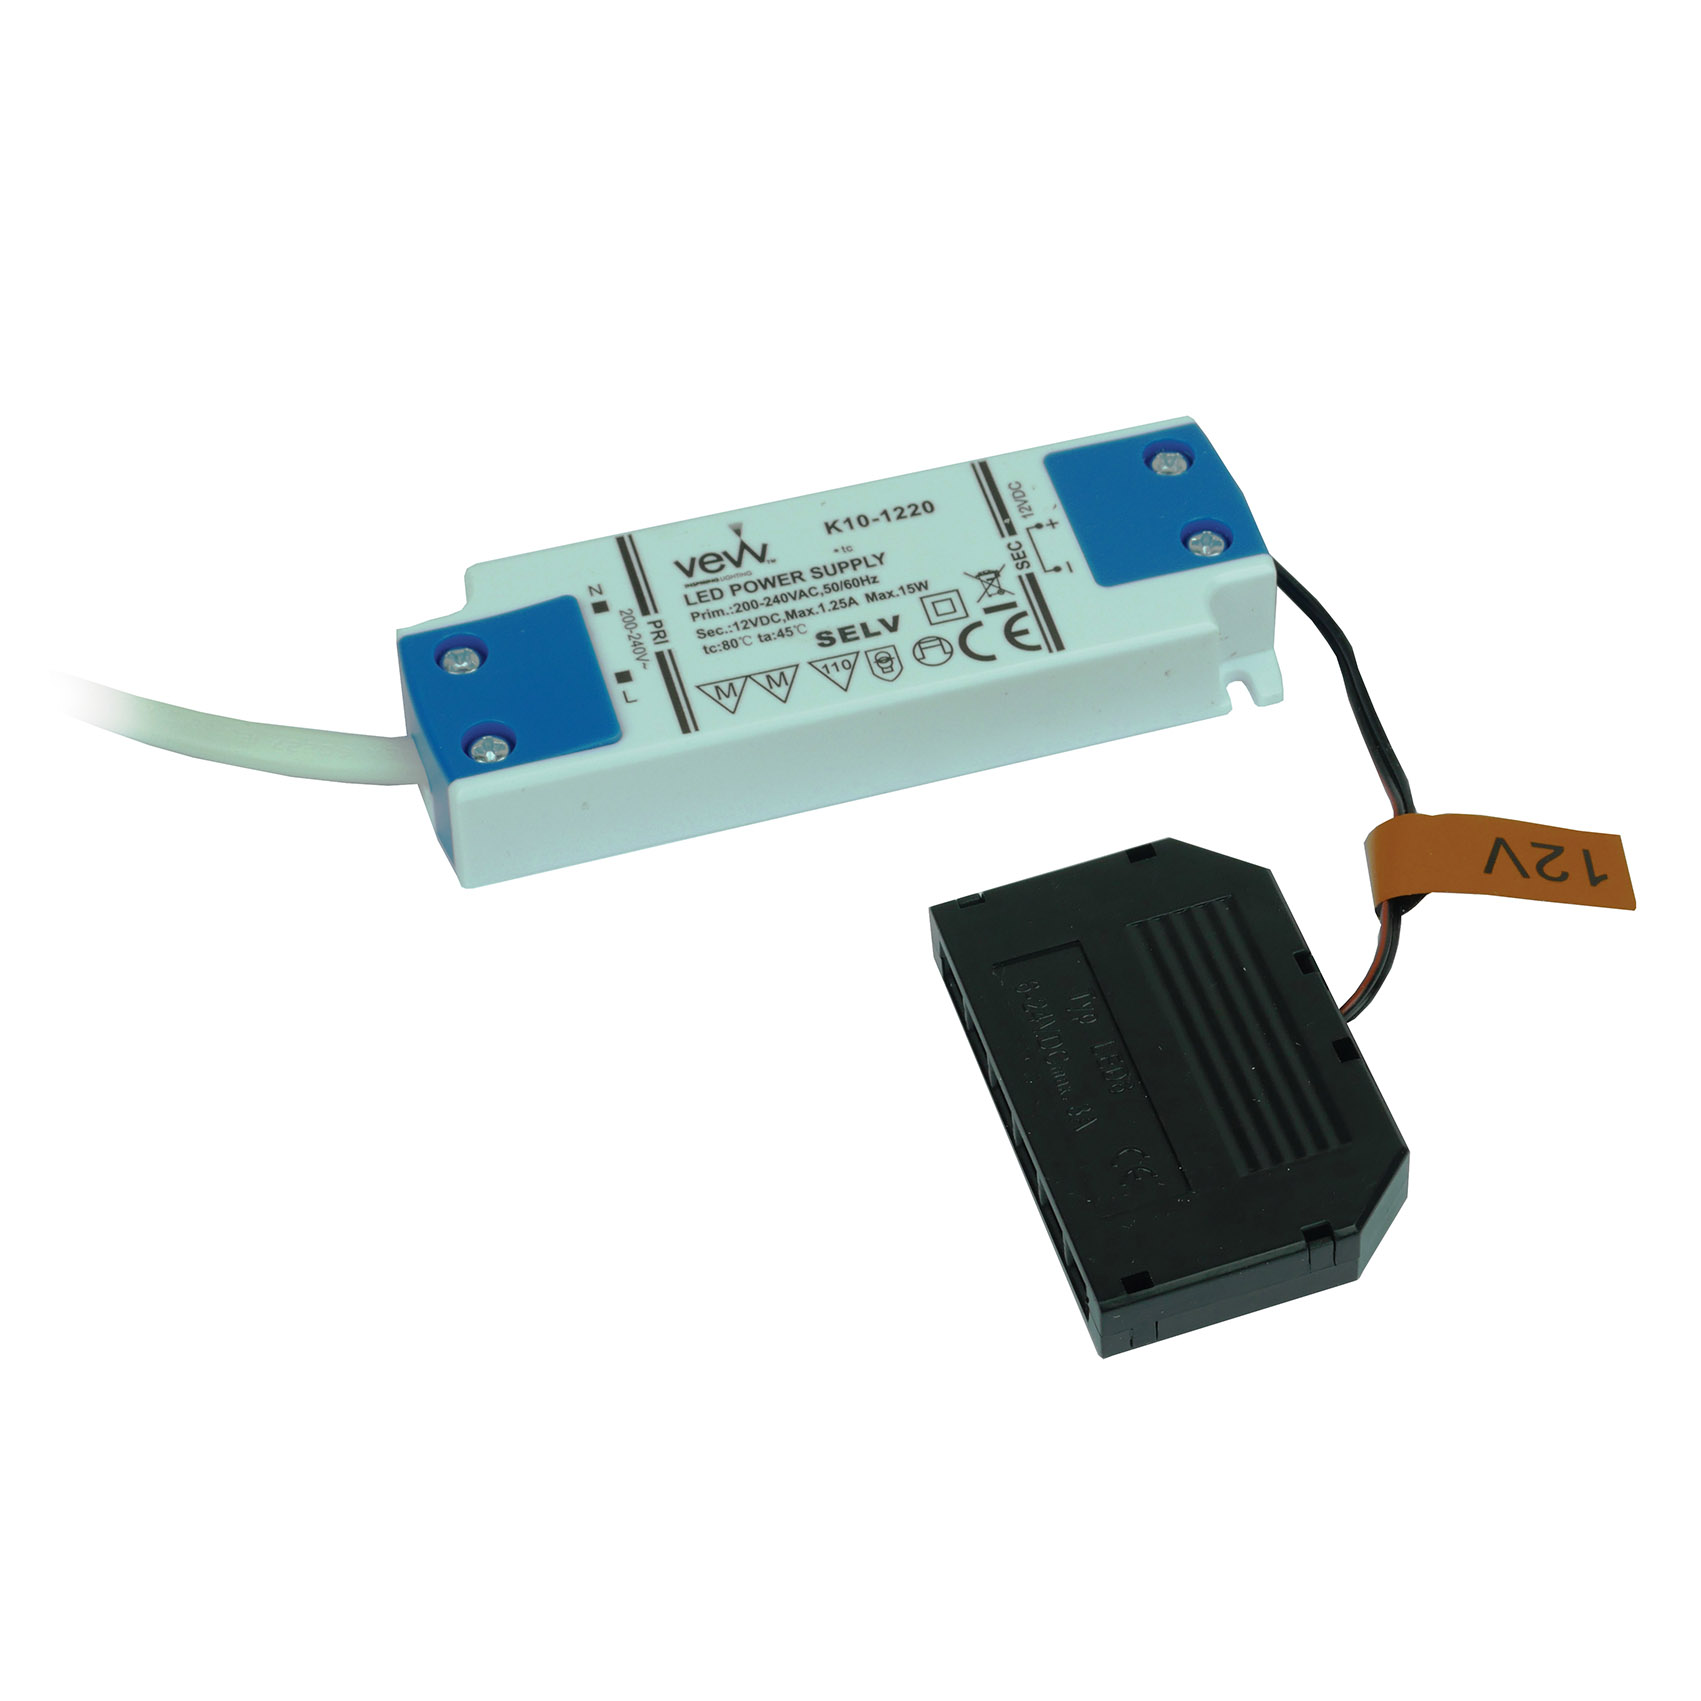 Driver 15w 12v LED Driver 15w For Single Colour, CCT & RGB Controllers